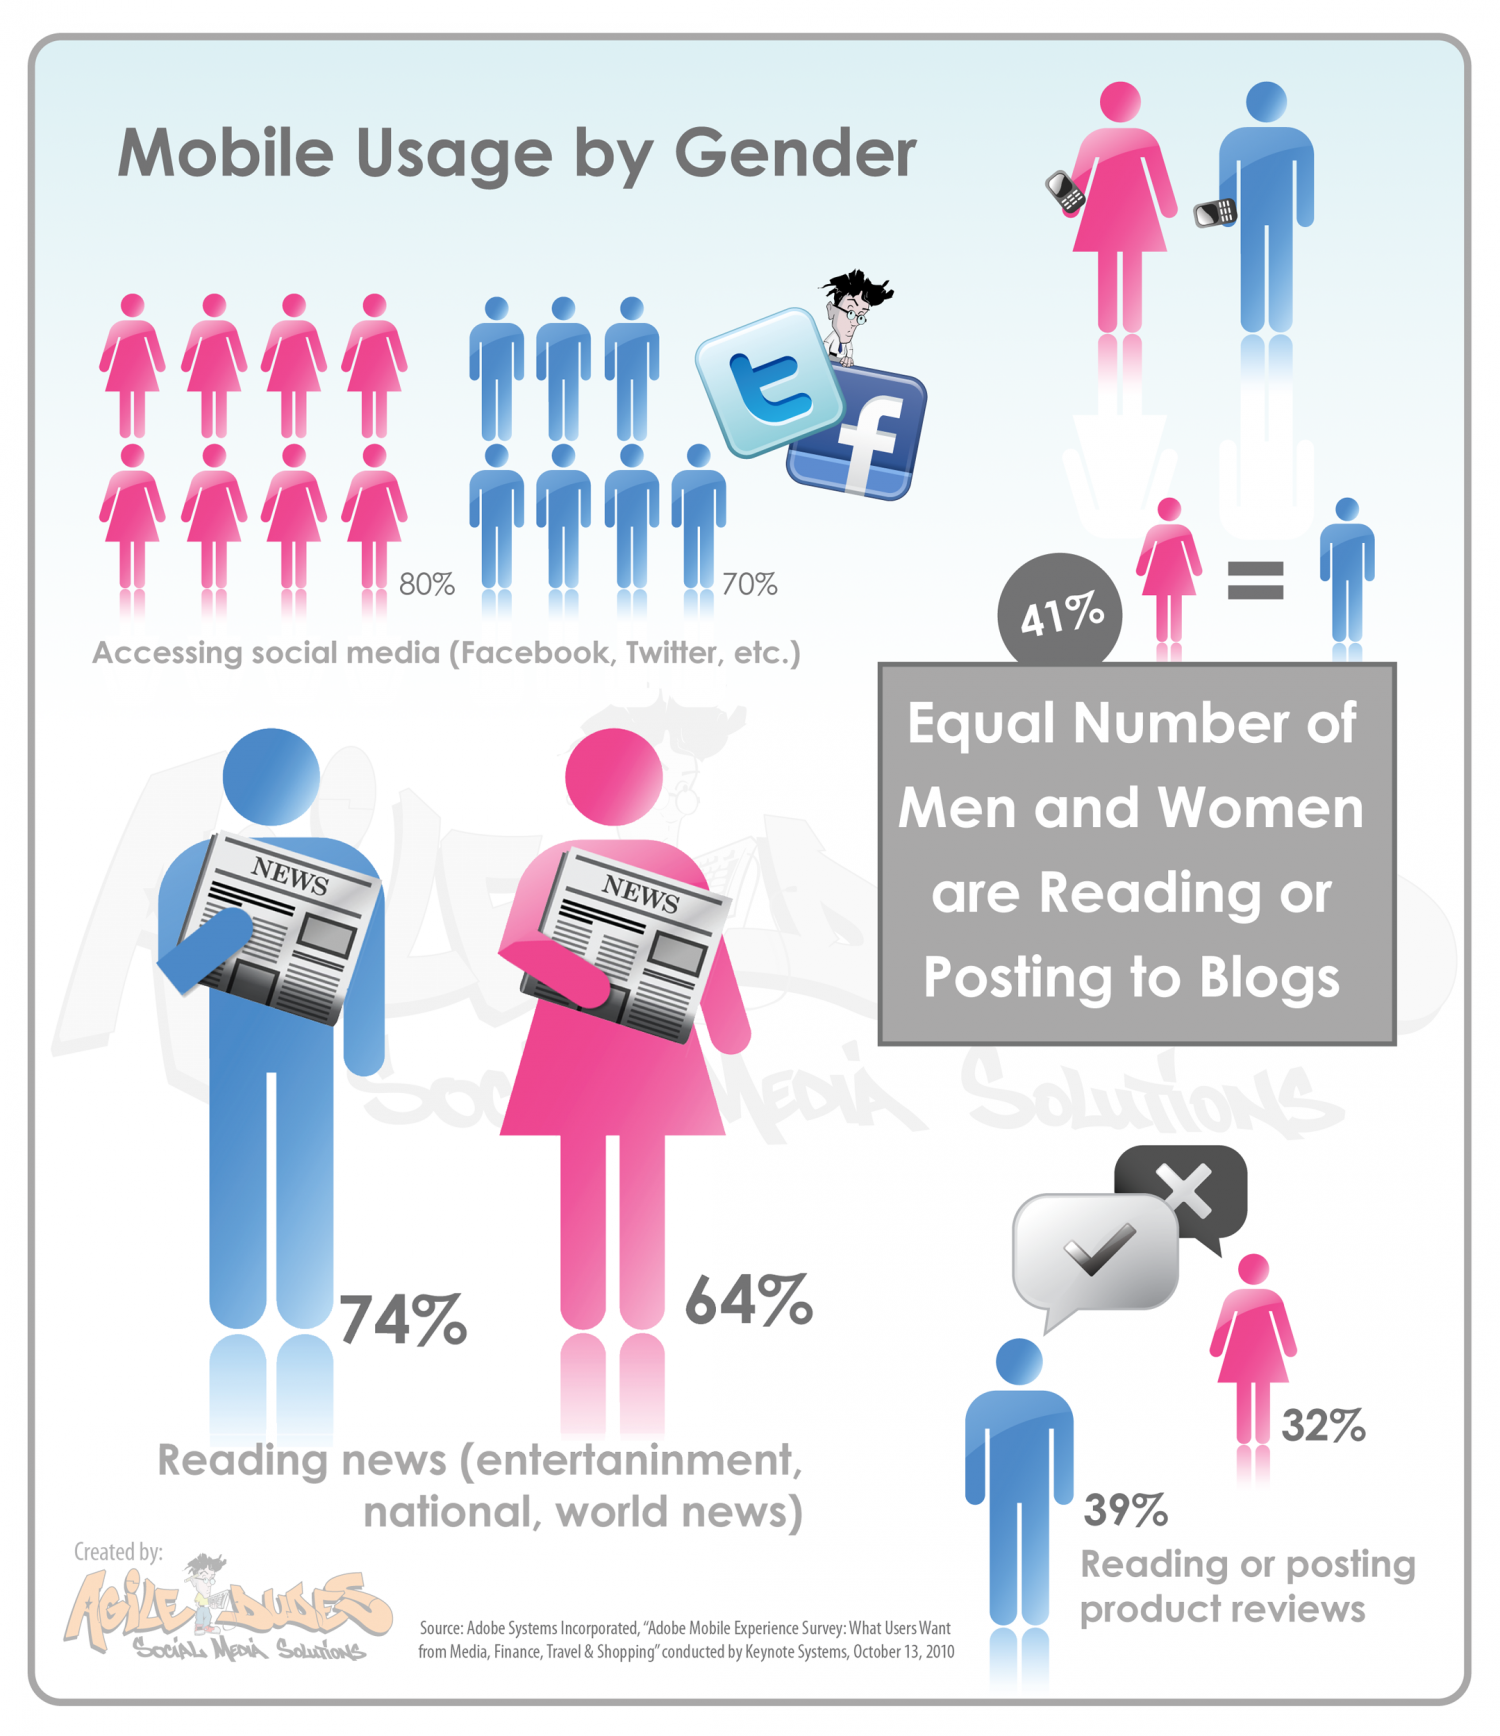 Mobile Usage by Gender Infographic